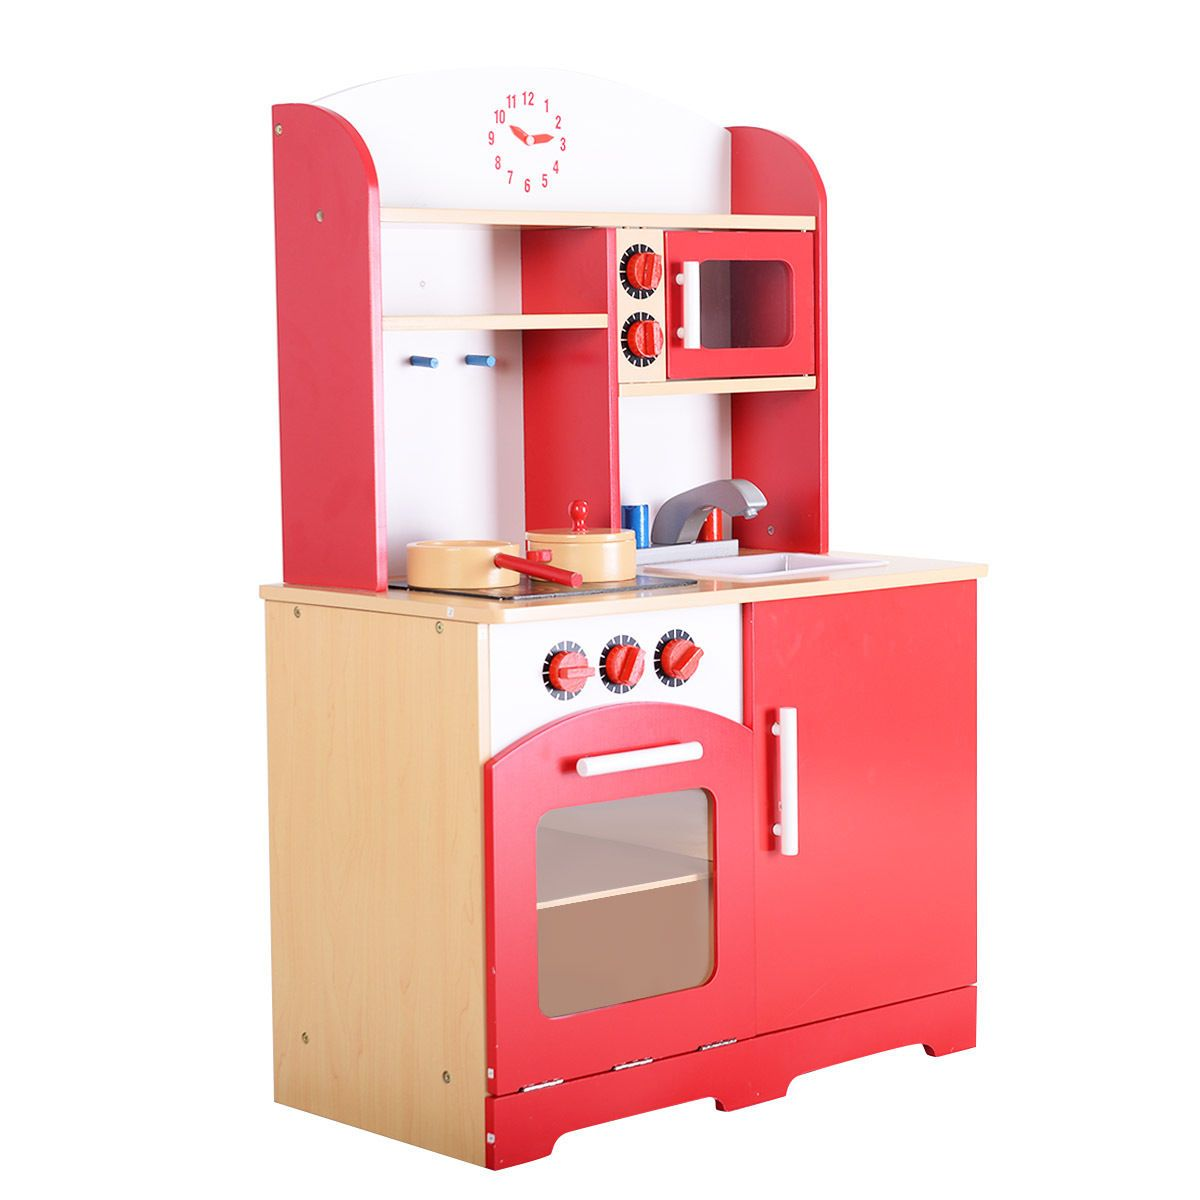 Details About Goplus Wood Kitchen Toy Kids Cooking Pretend Play Set Toddler Wooden Playset New Pretend Play Kitchen Toy Kitchen Set Toy Kitchen